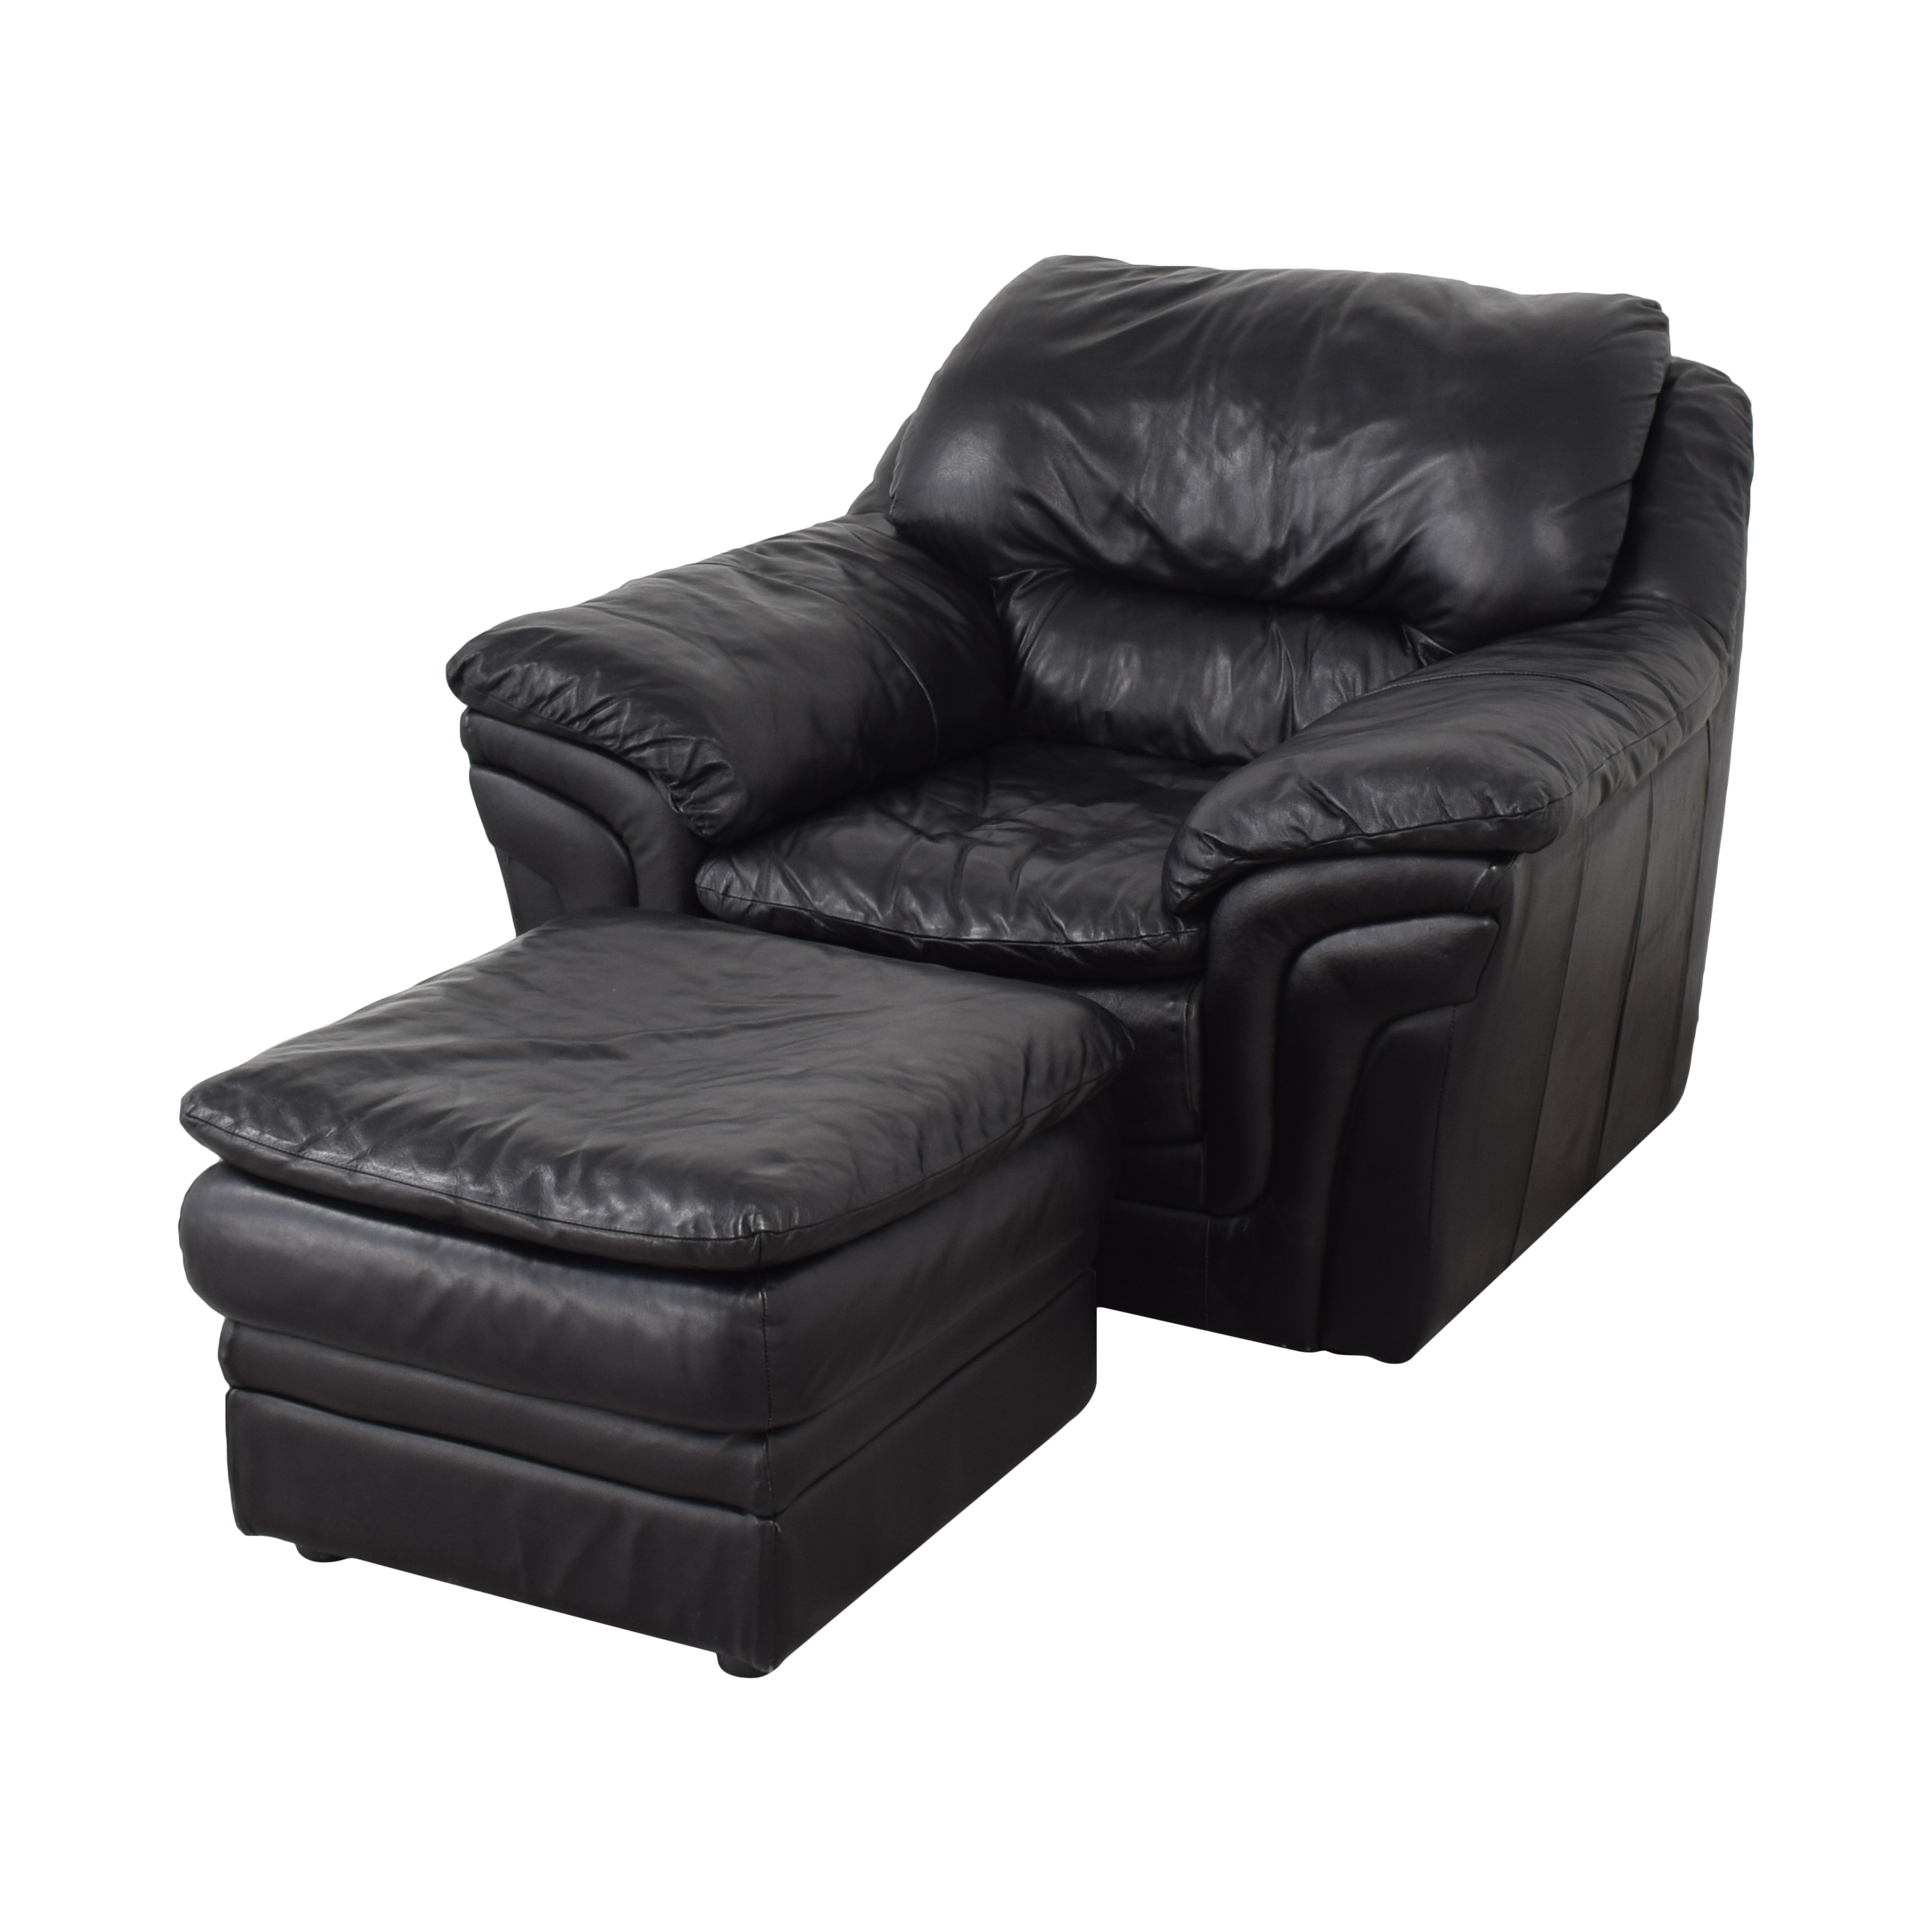 Soft Line SpA Soft Line SpA Chair with Ottoman ct